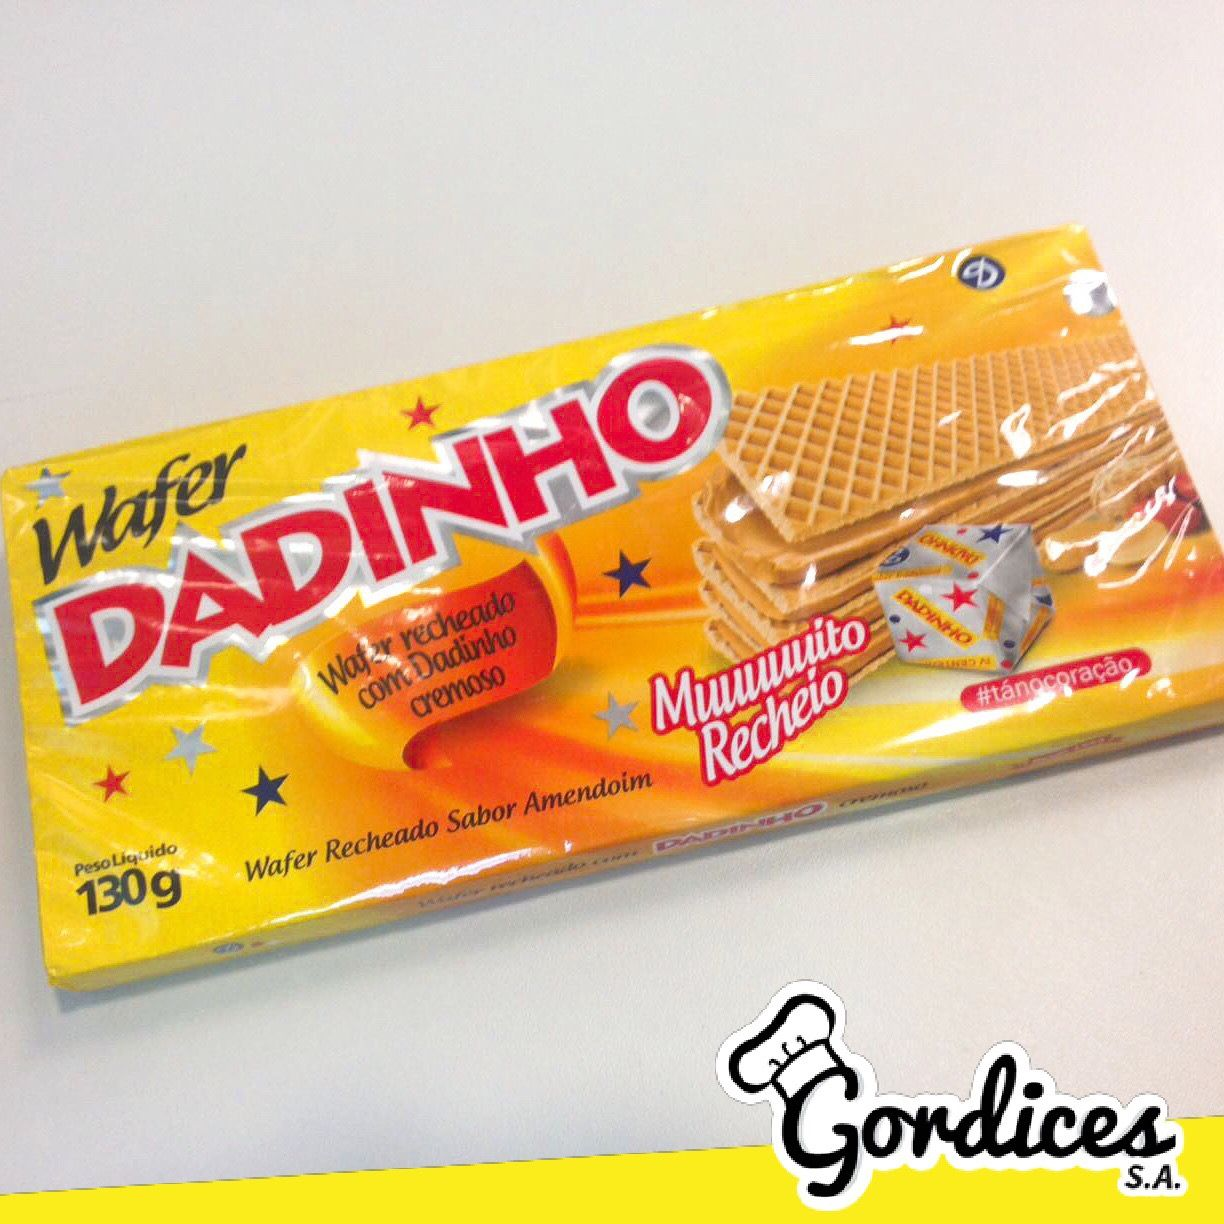 Wafer de Dadinho? 😱💛 - www.gordicessa.com